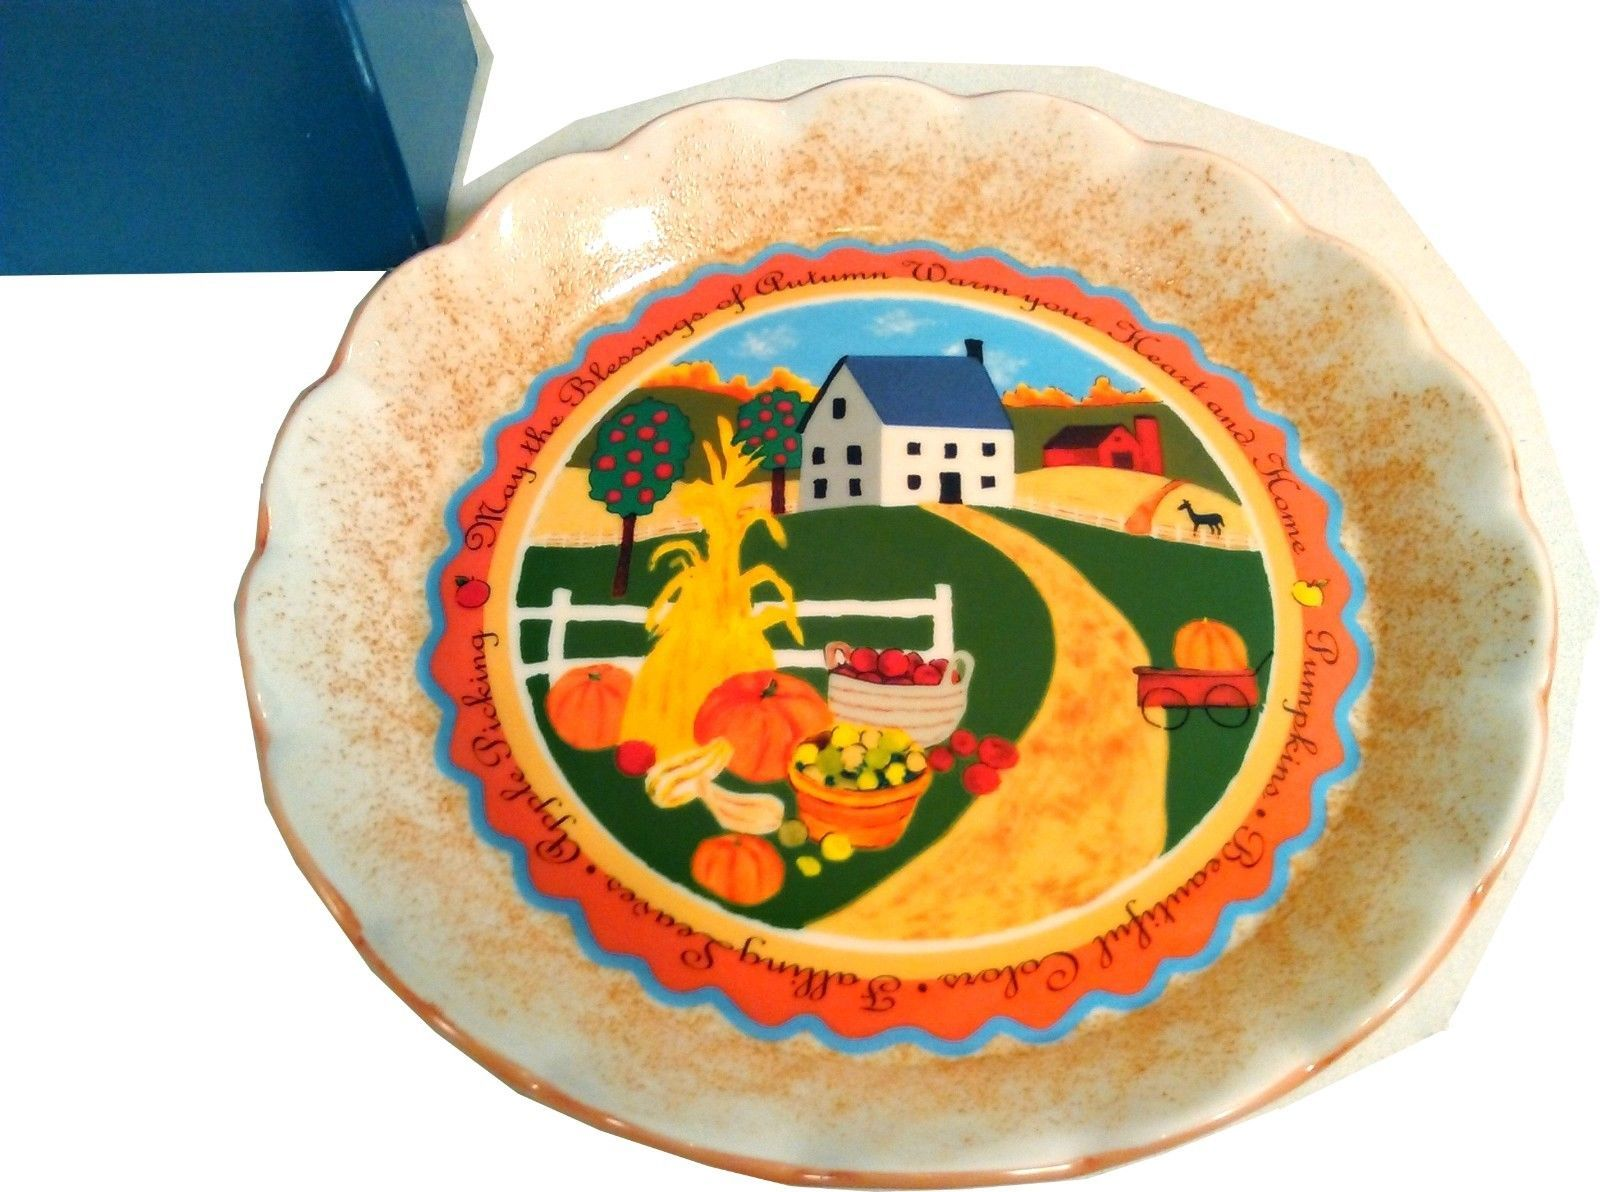 NEW DECORATIVE HARVEST ACCENT AVON PLATE CIRCA 2005 IN ORIGINAL BOX